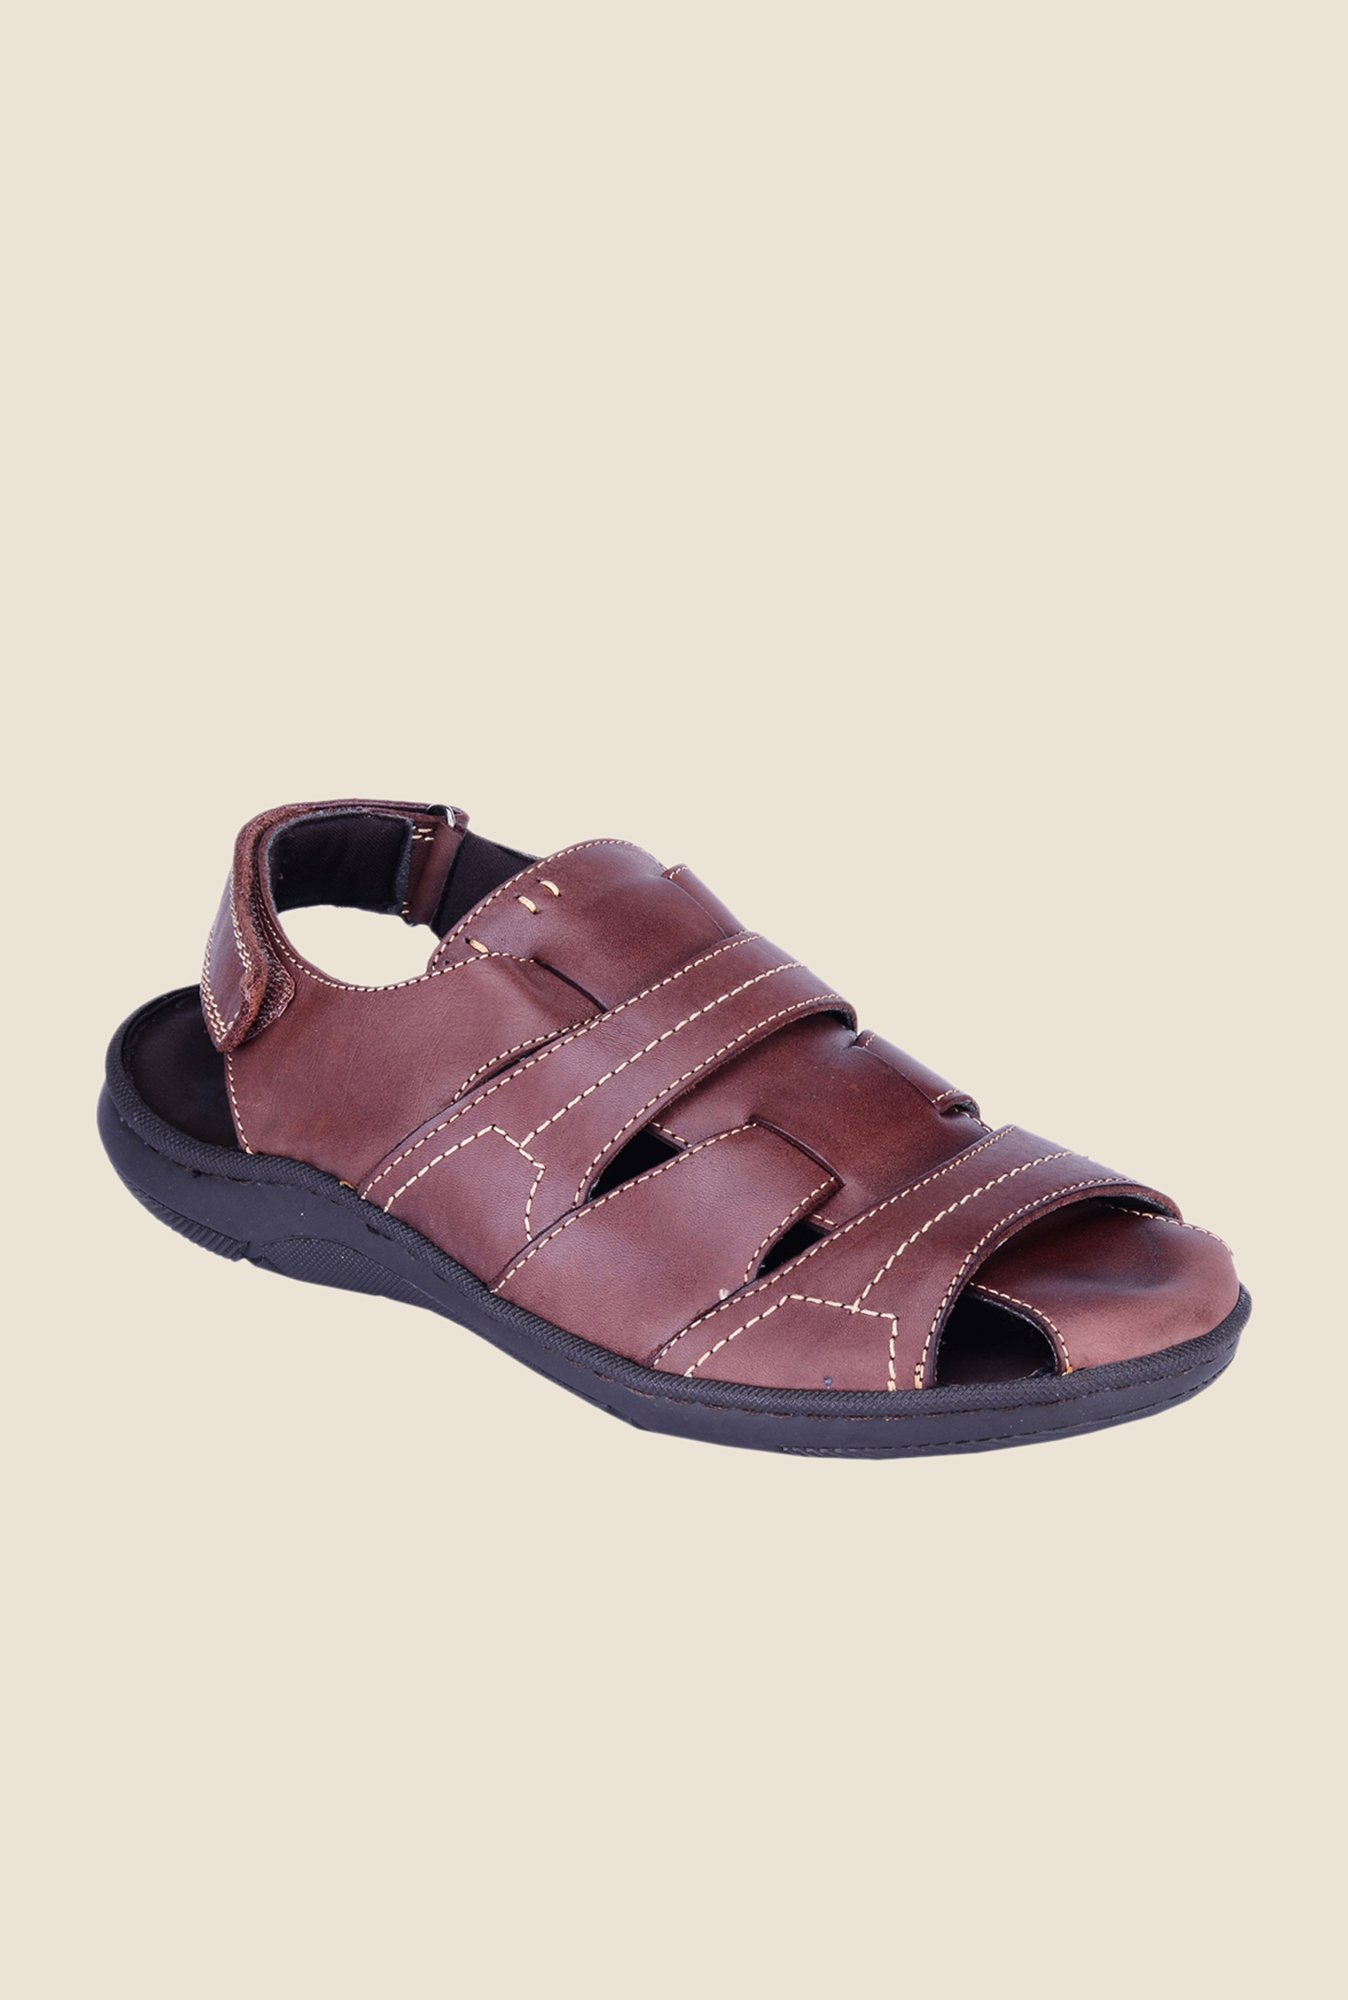 Khadim's British Walkers Brown Fisherman Sandals